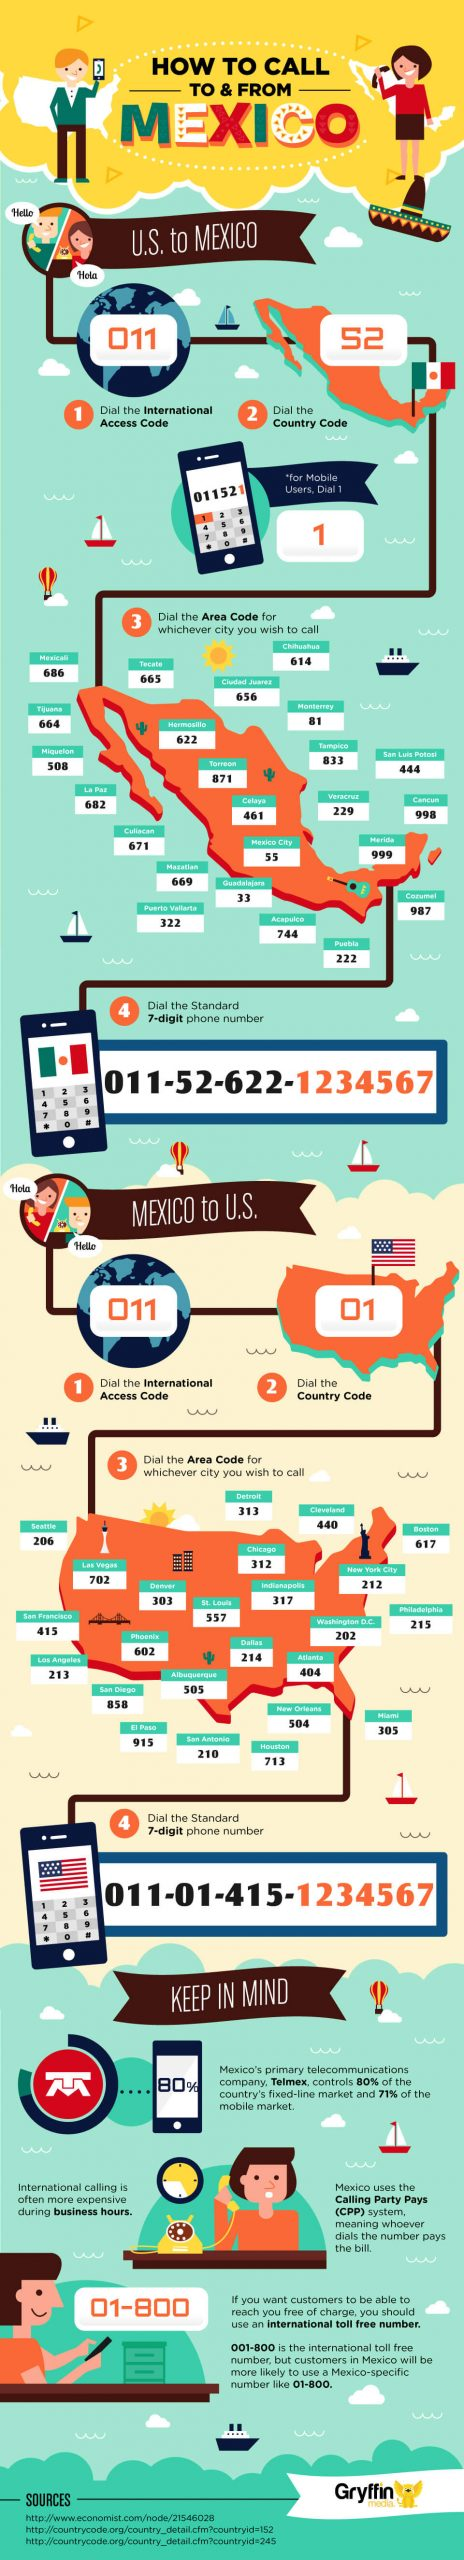 infographic with advice on the best way to call people in Mexico